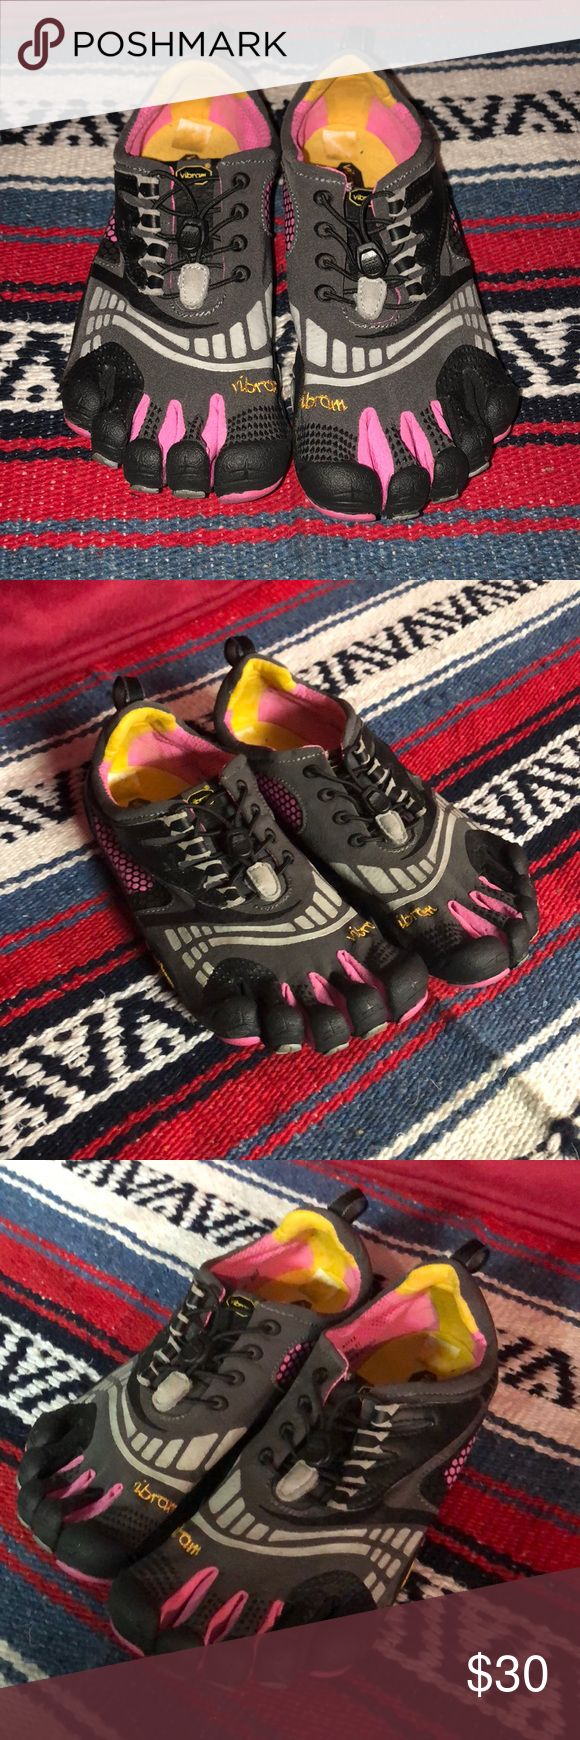 Vibram five fingers women's size 11 Vibram five fingers pink and gray in good condition 11 Vibram Shoes Sandals